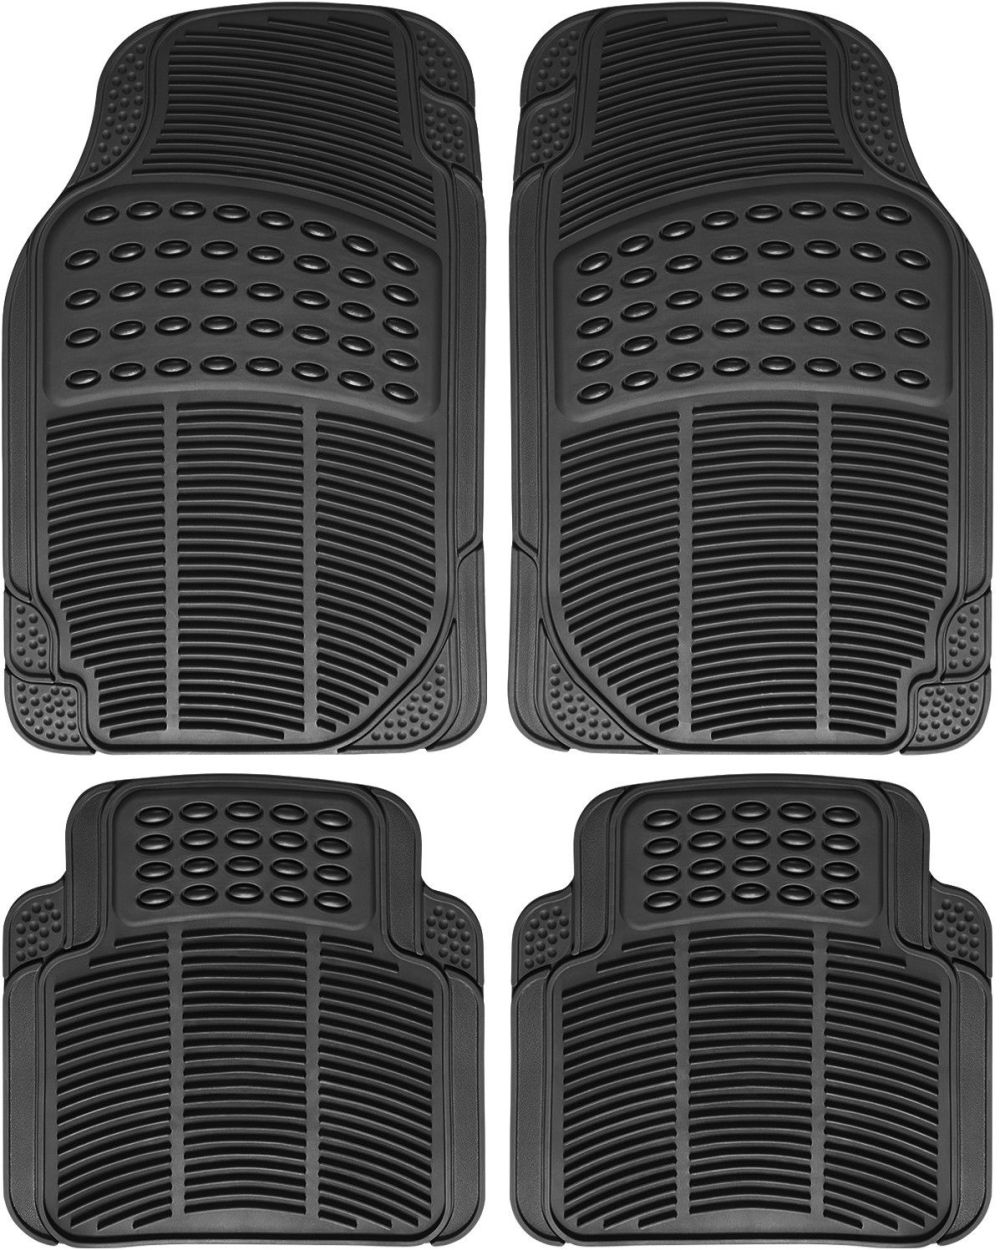 medium resolution of great auto floor mat for ford car truck suv van 4pc full set all weather rubber black 2017 2018